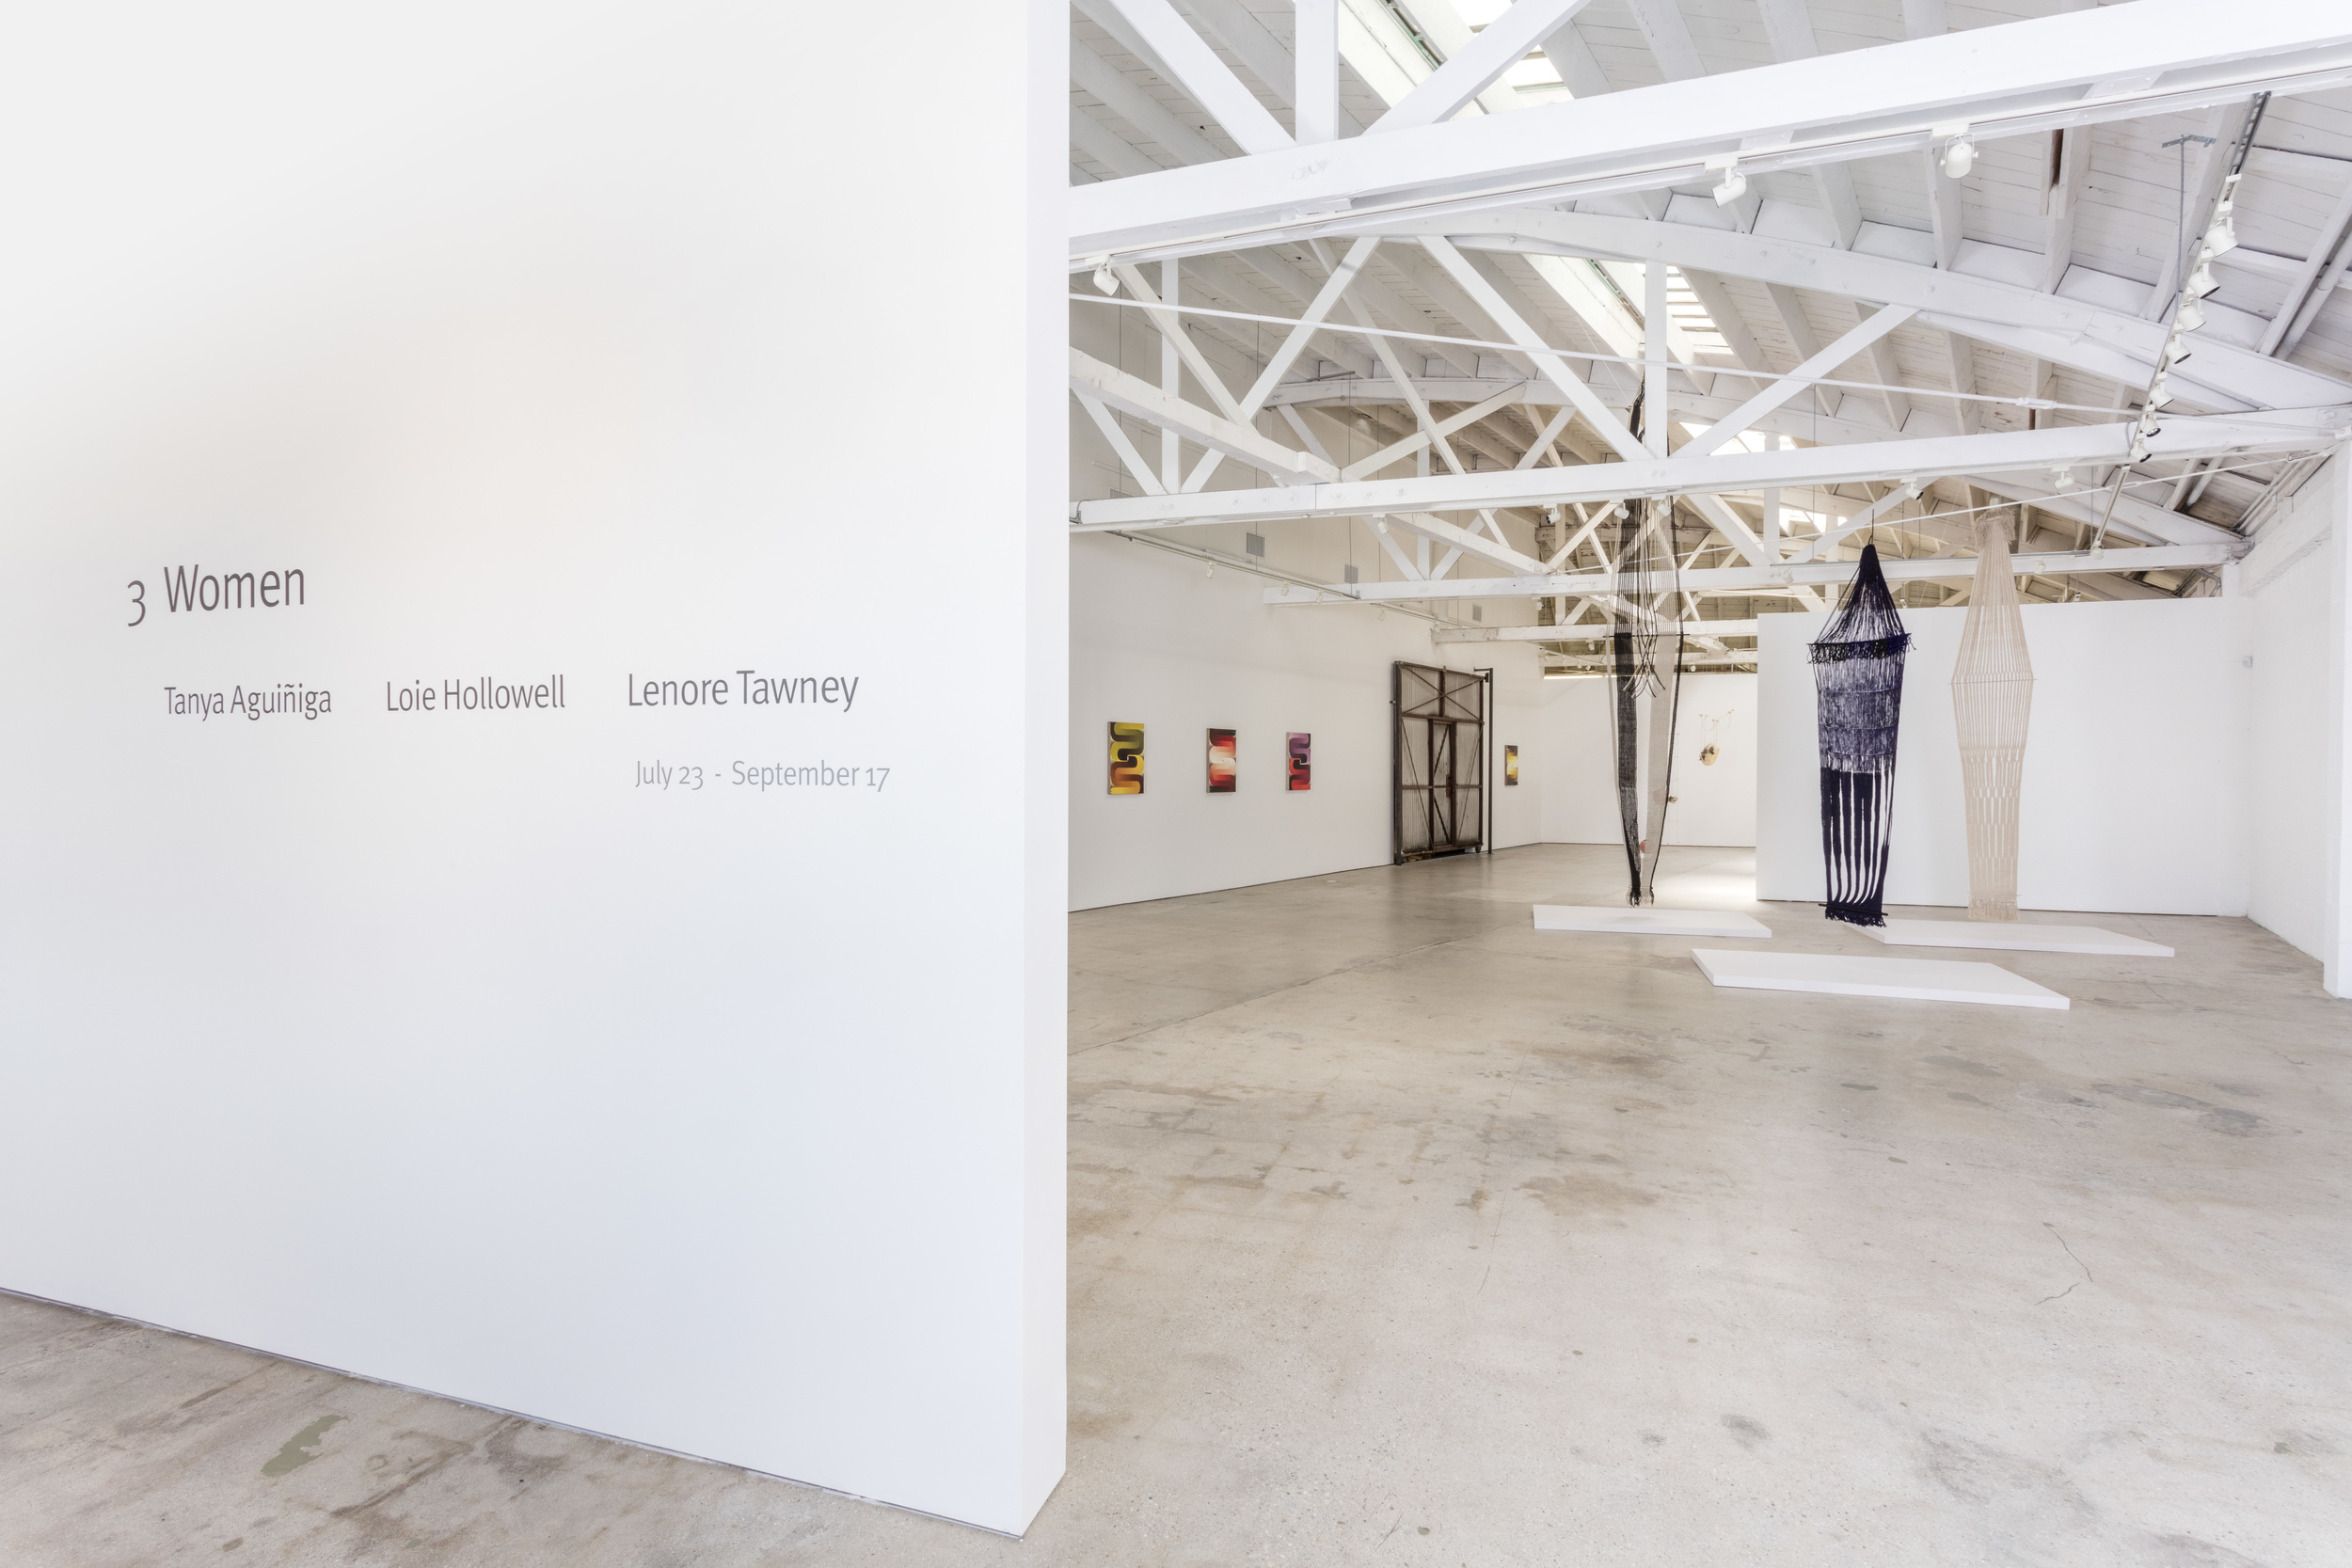 3 Women  (July 23 - September 17, 2016) installation view    Joshua White/JW Pictures, courtesy of the Landing, Los Angeles